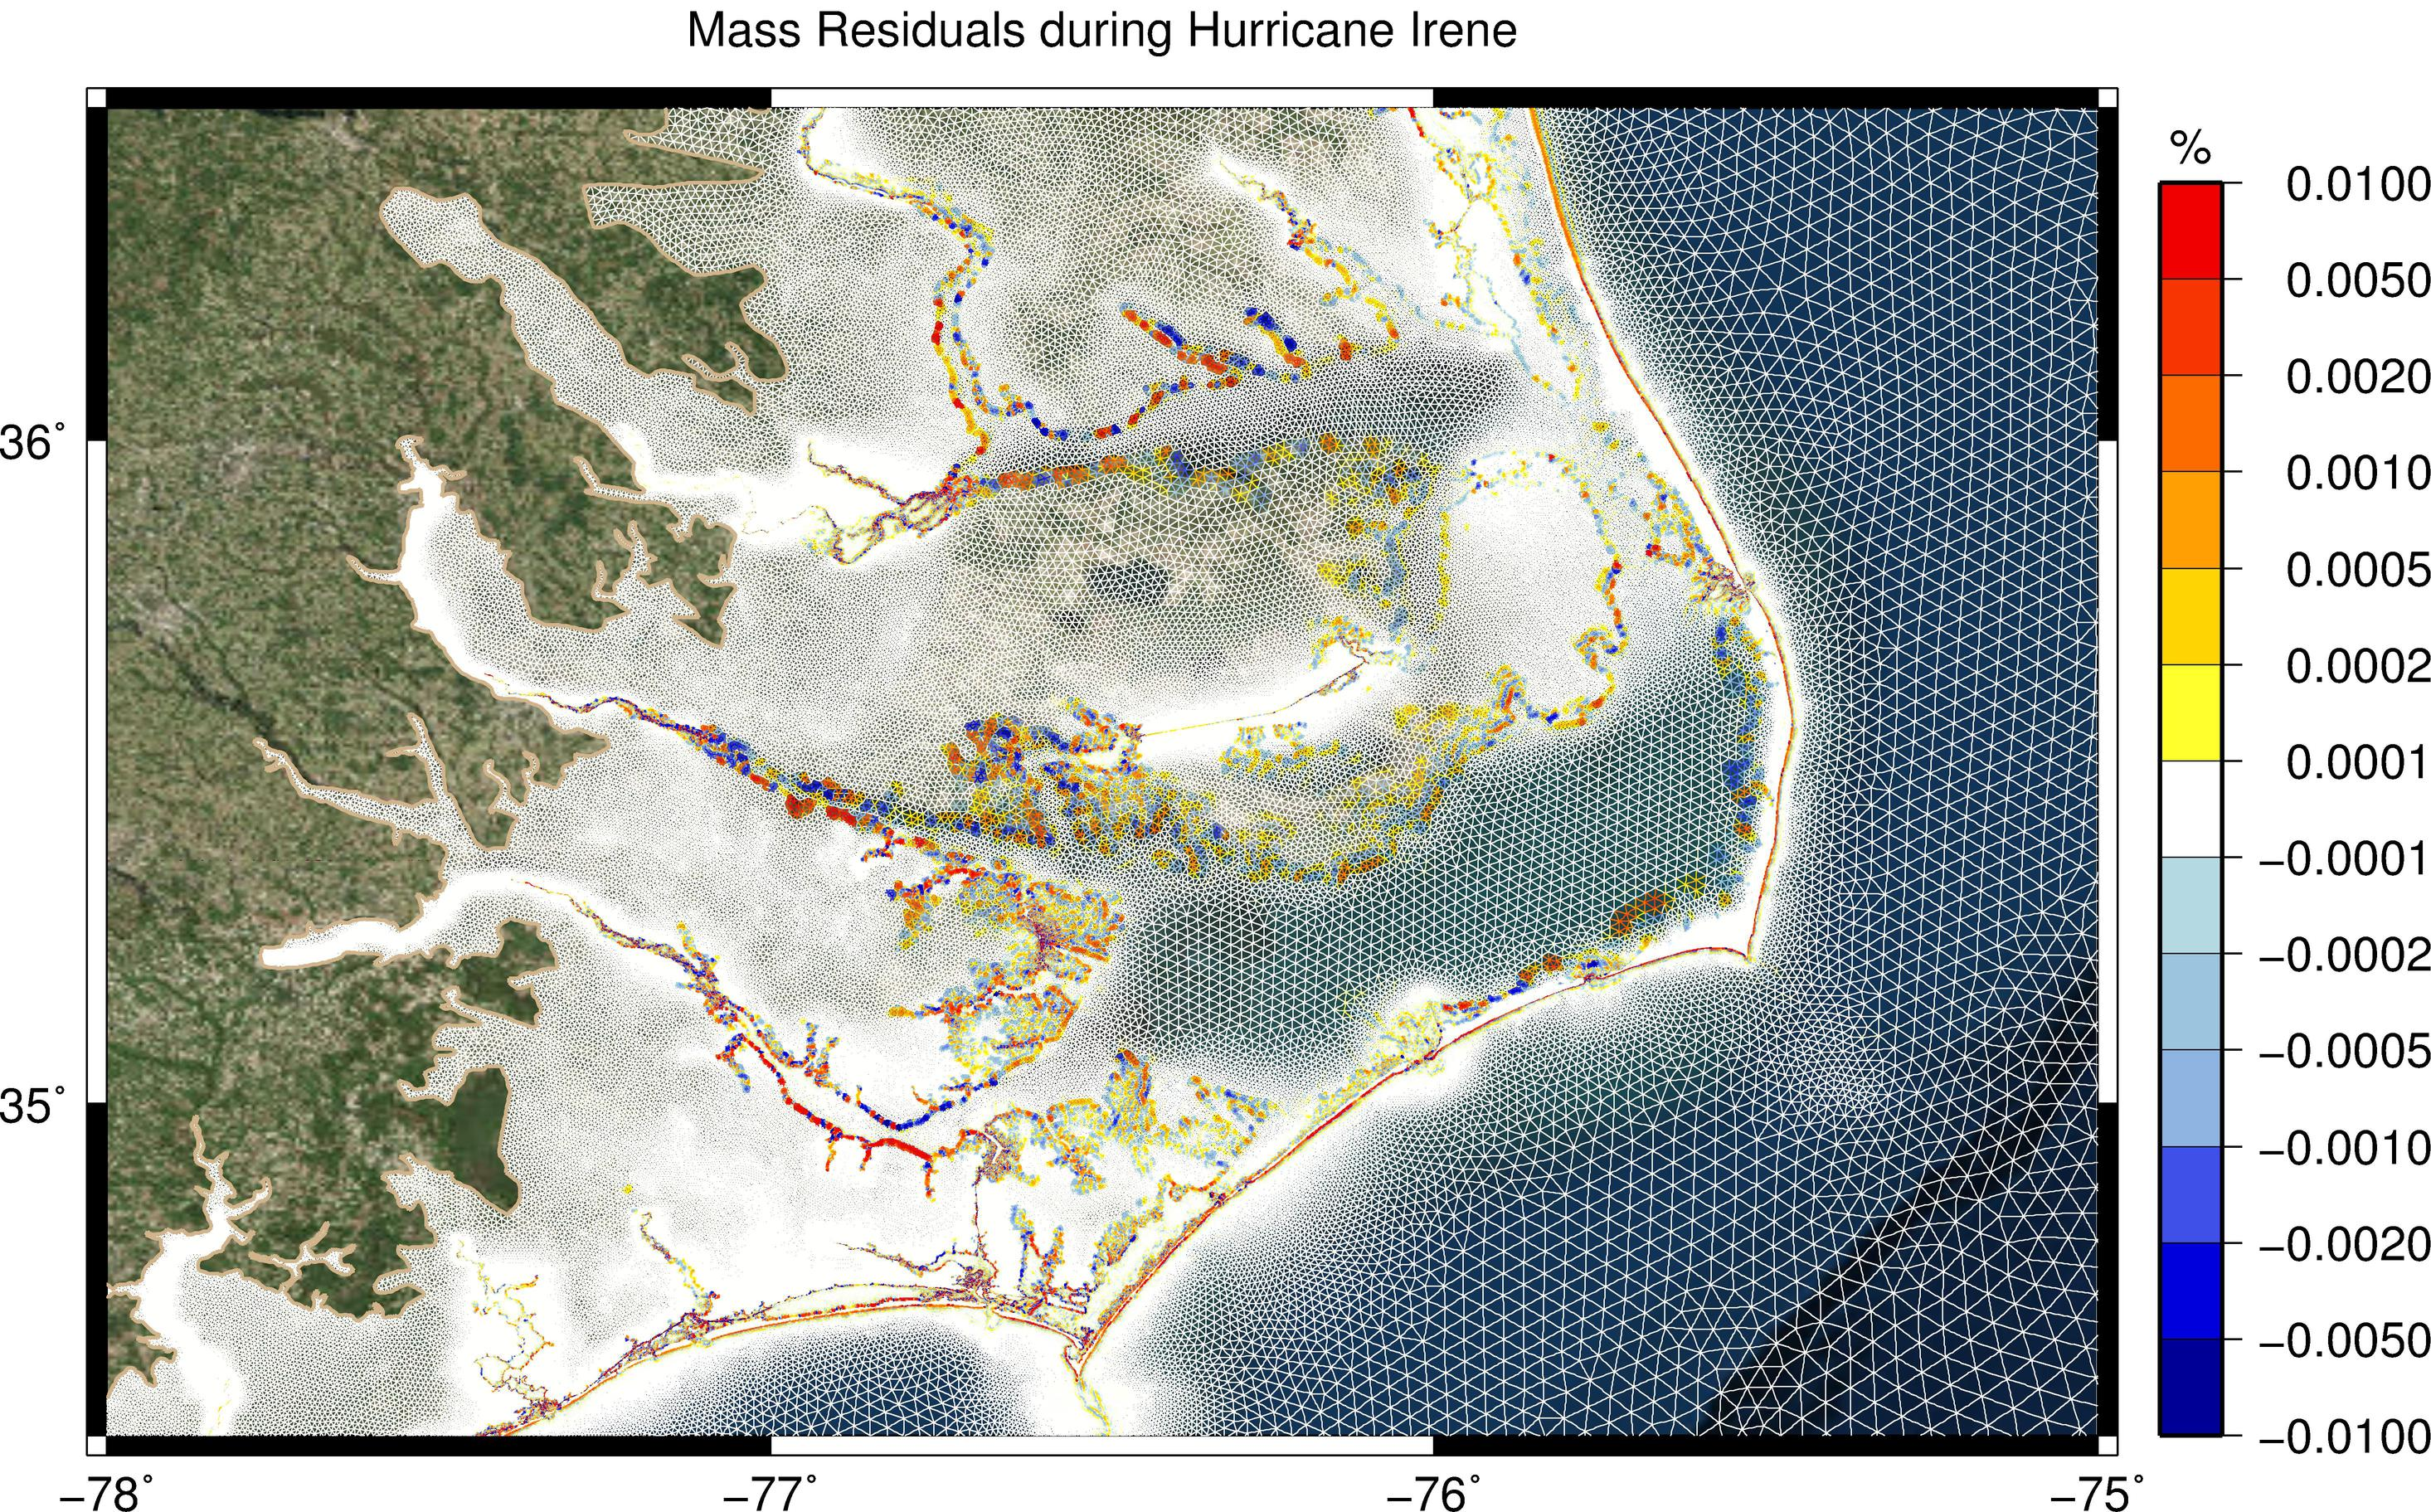 Mass residuals (as percentage of still-water volume) during Hurricane Irene (2011).